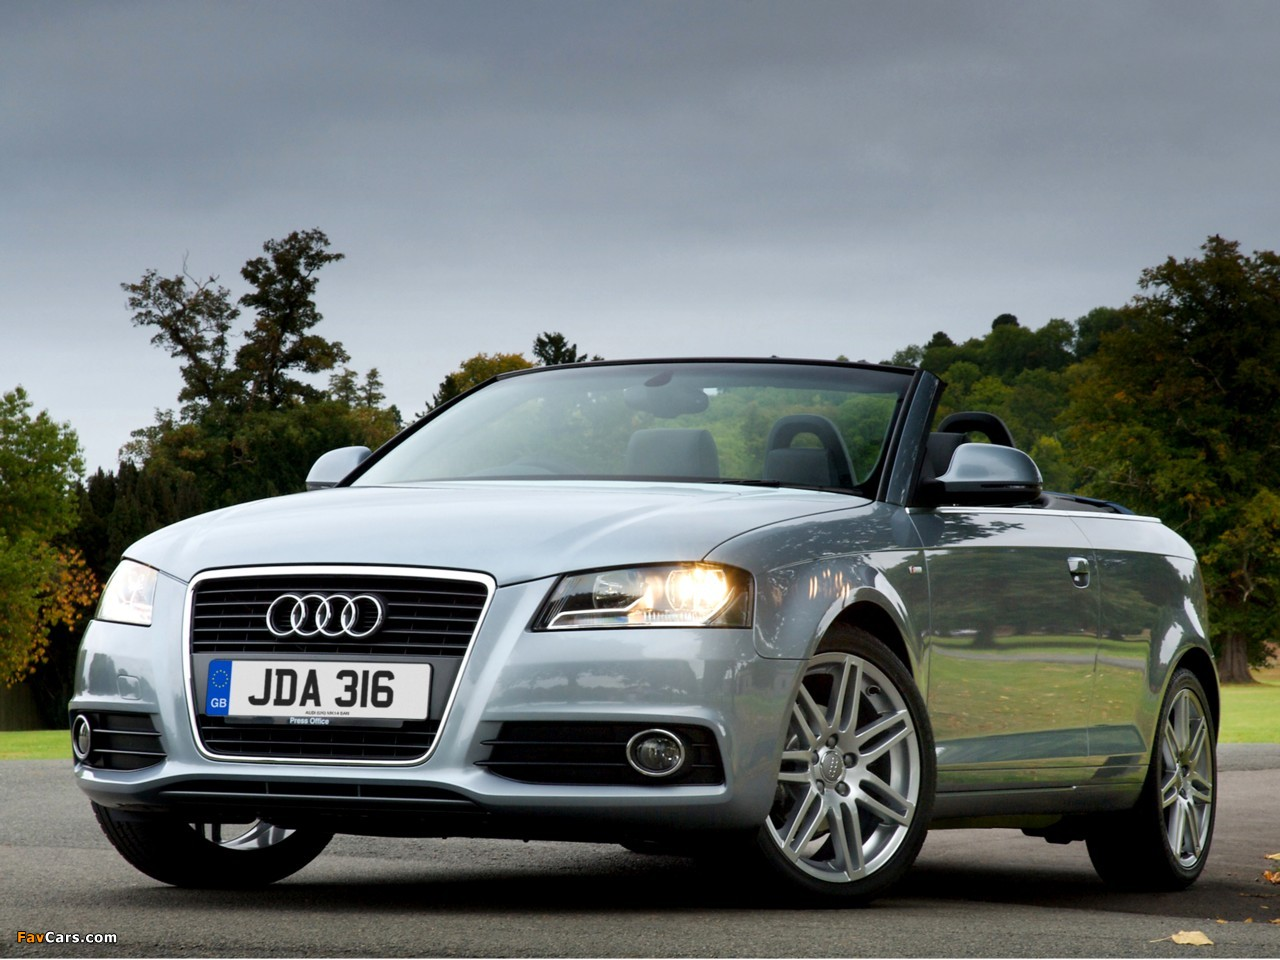 audi a3 1 6 tdi s line cabriolet uk spec 8pa 2008 2010 wallpapers 1280x960. Black Bedroom Furniture Sets. Home Design Ideas